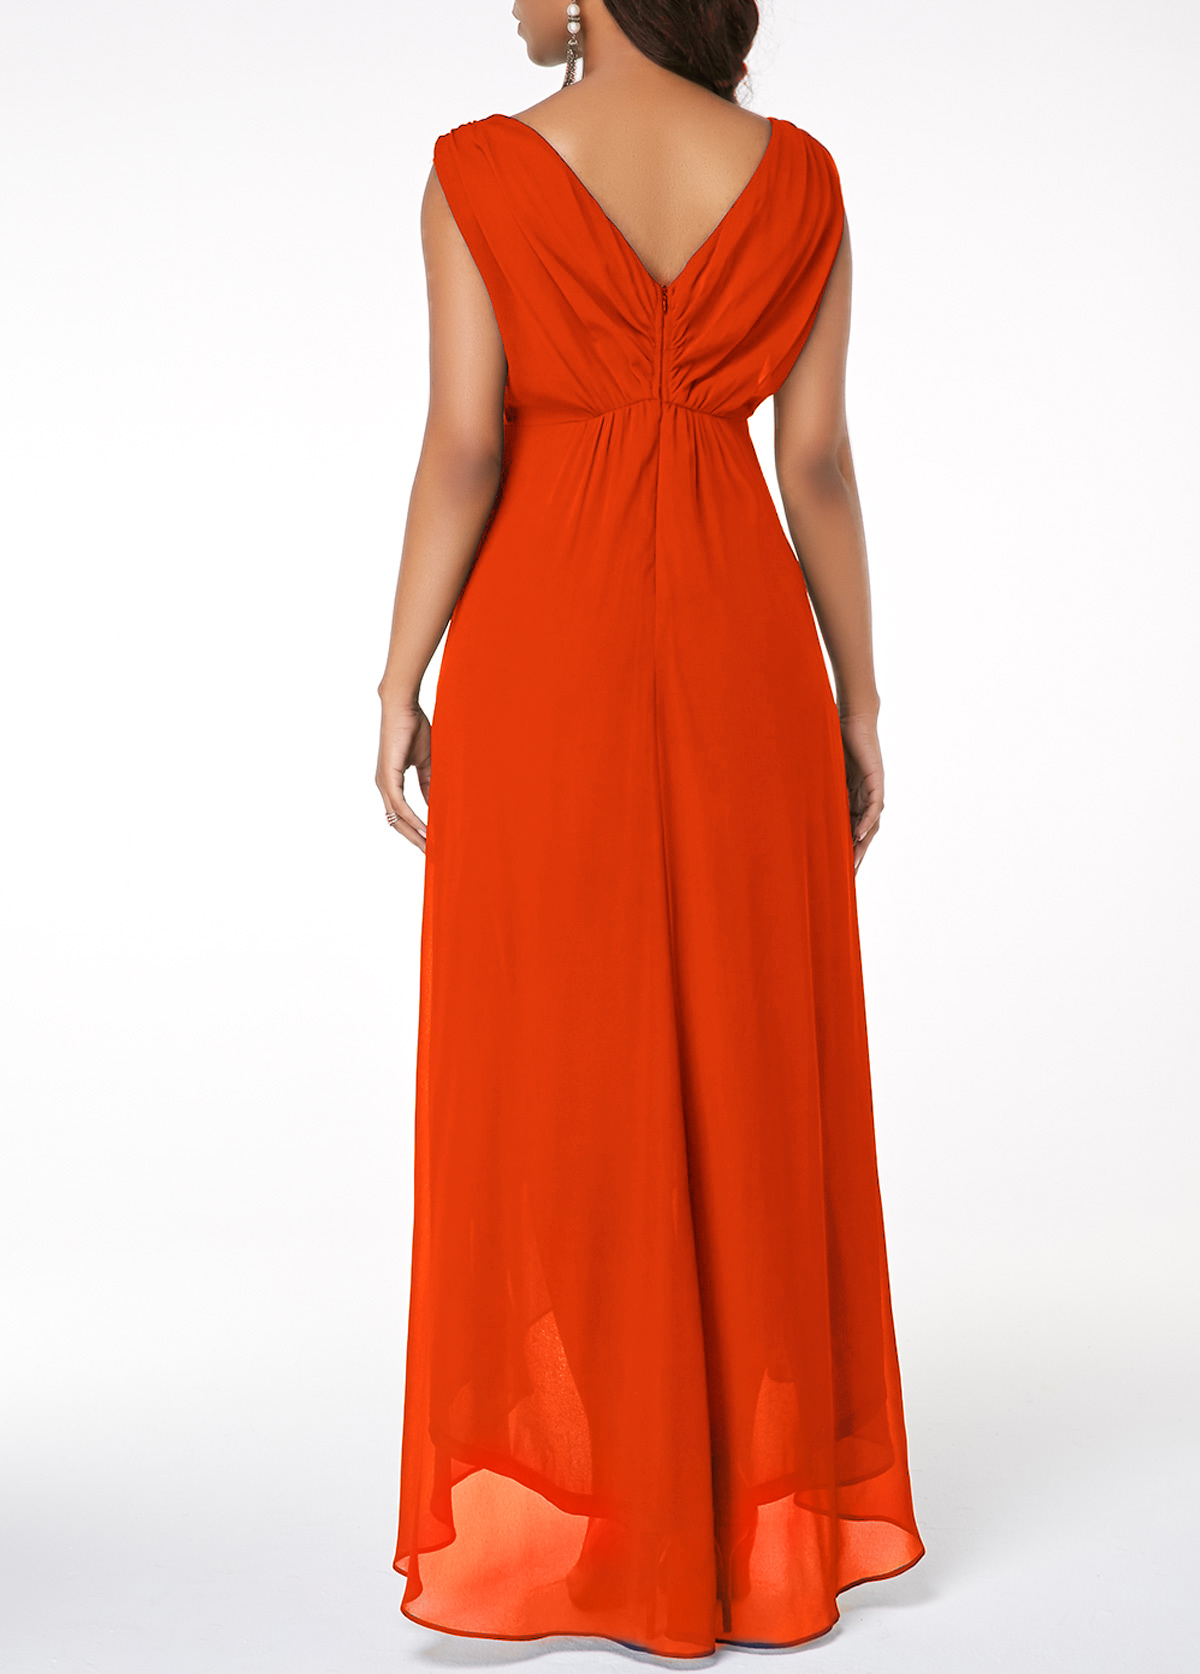 Asymmetric Hem Plunging Neck V Back Maxi Dress